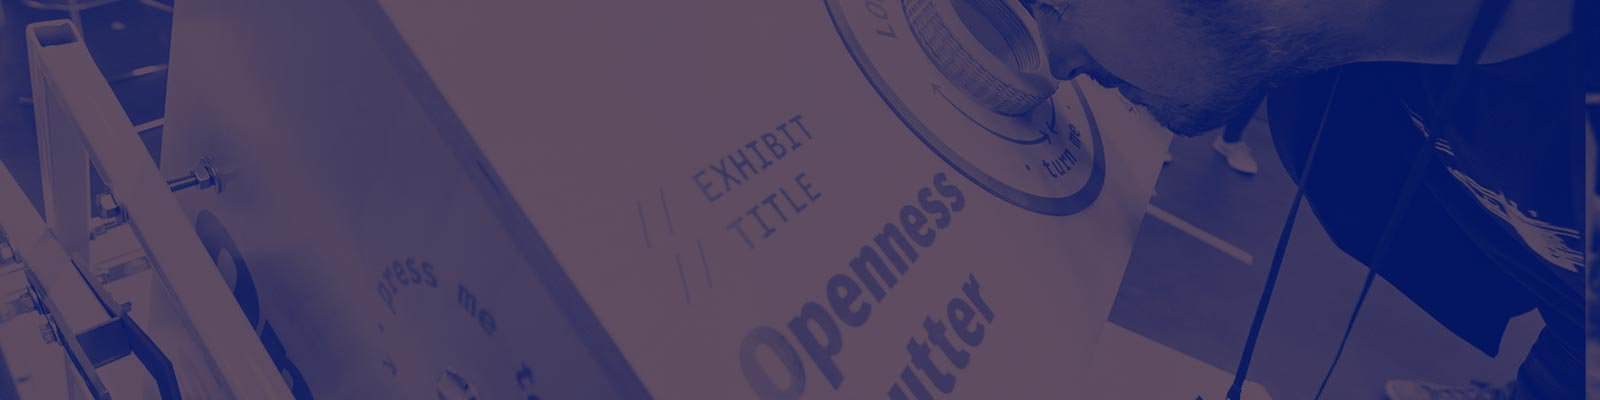 A person stands at an installation looking into a lens. The title of the installation is printing onto the side and reads 'Openness Shutter'